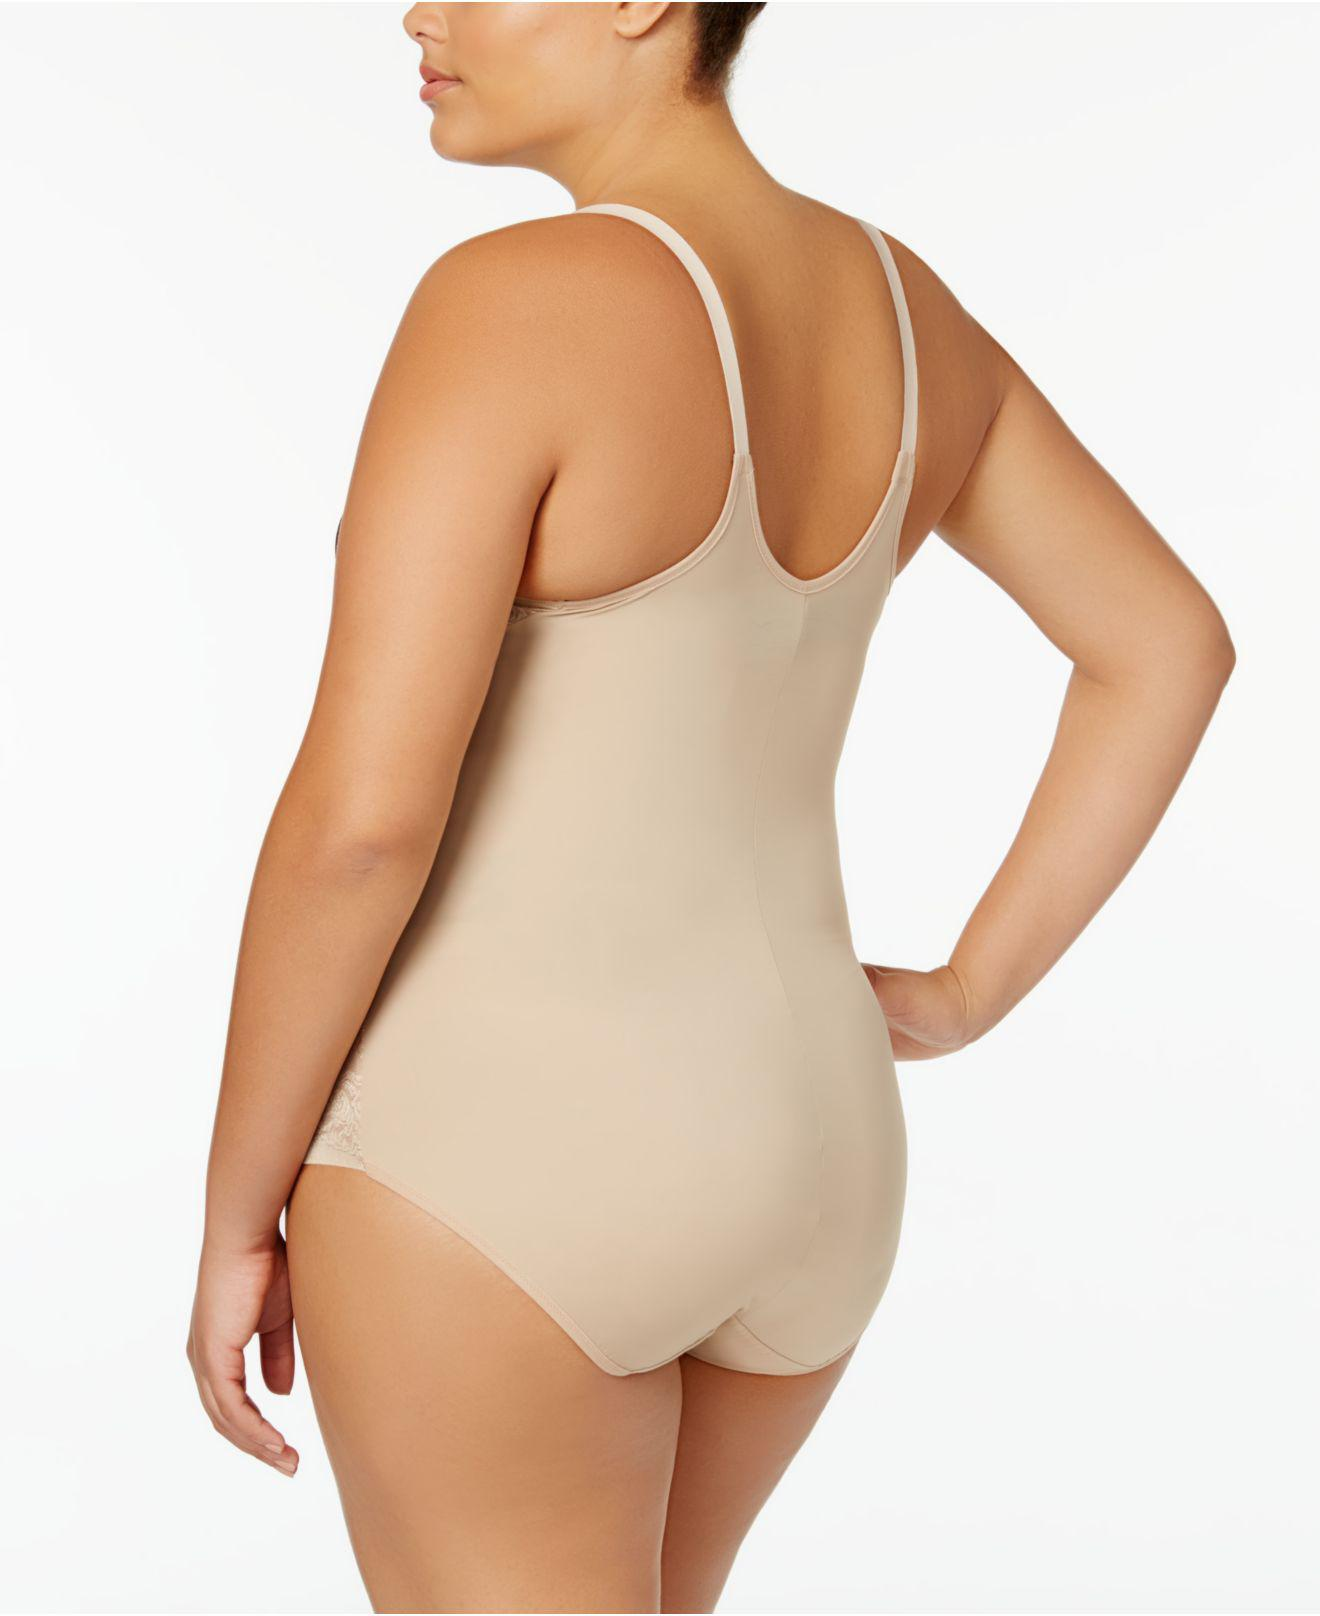 e7ad2c6ea3b Lyst - Maidenform Firm Foundations Curvy Plus Size Firm Control Wear Your  Own Bra Body Shaper Dm1025 in Natural